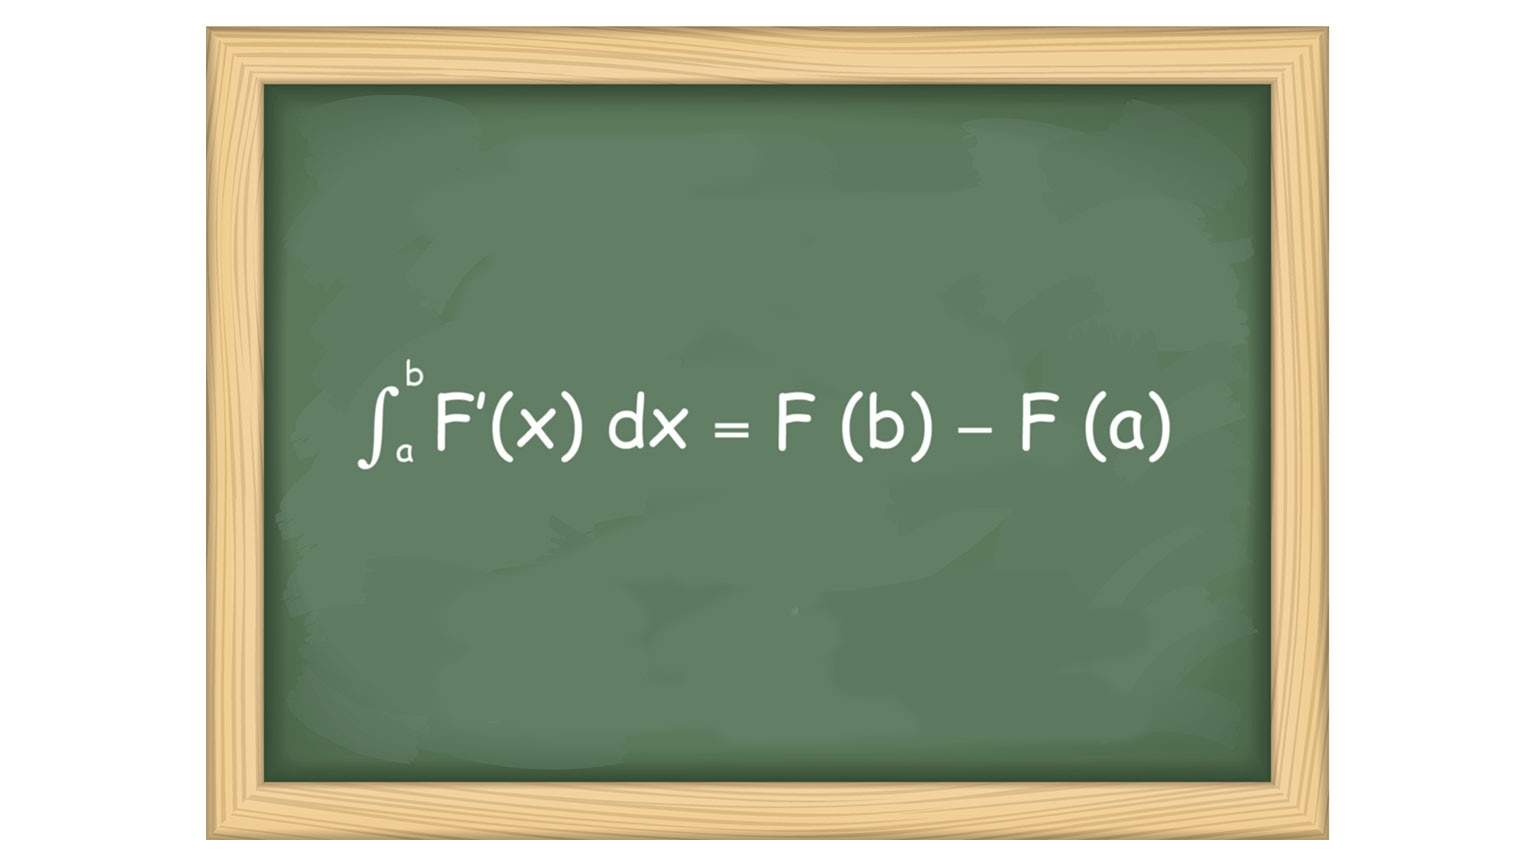 The Integral and the Fundamental Theorem